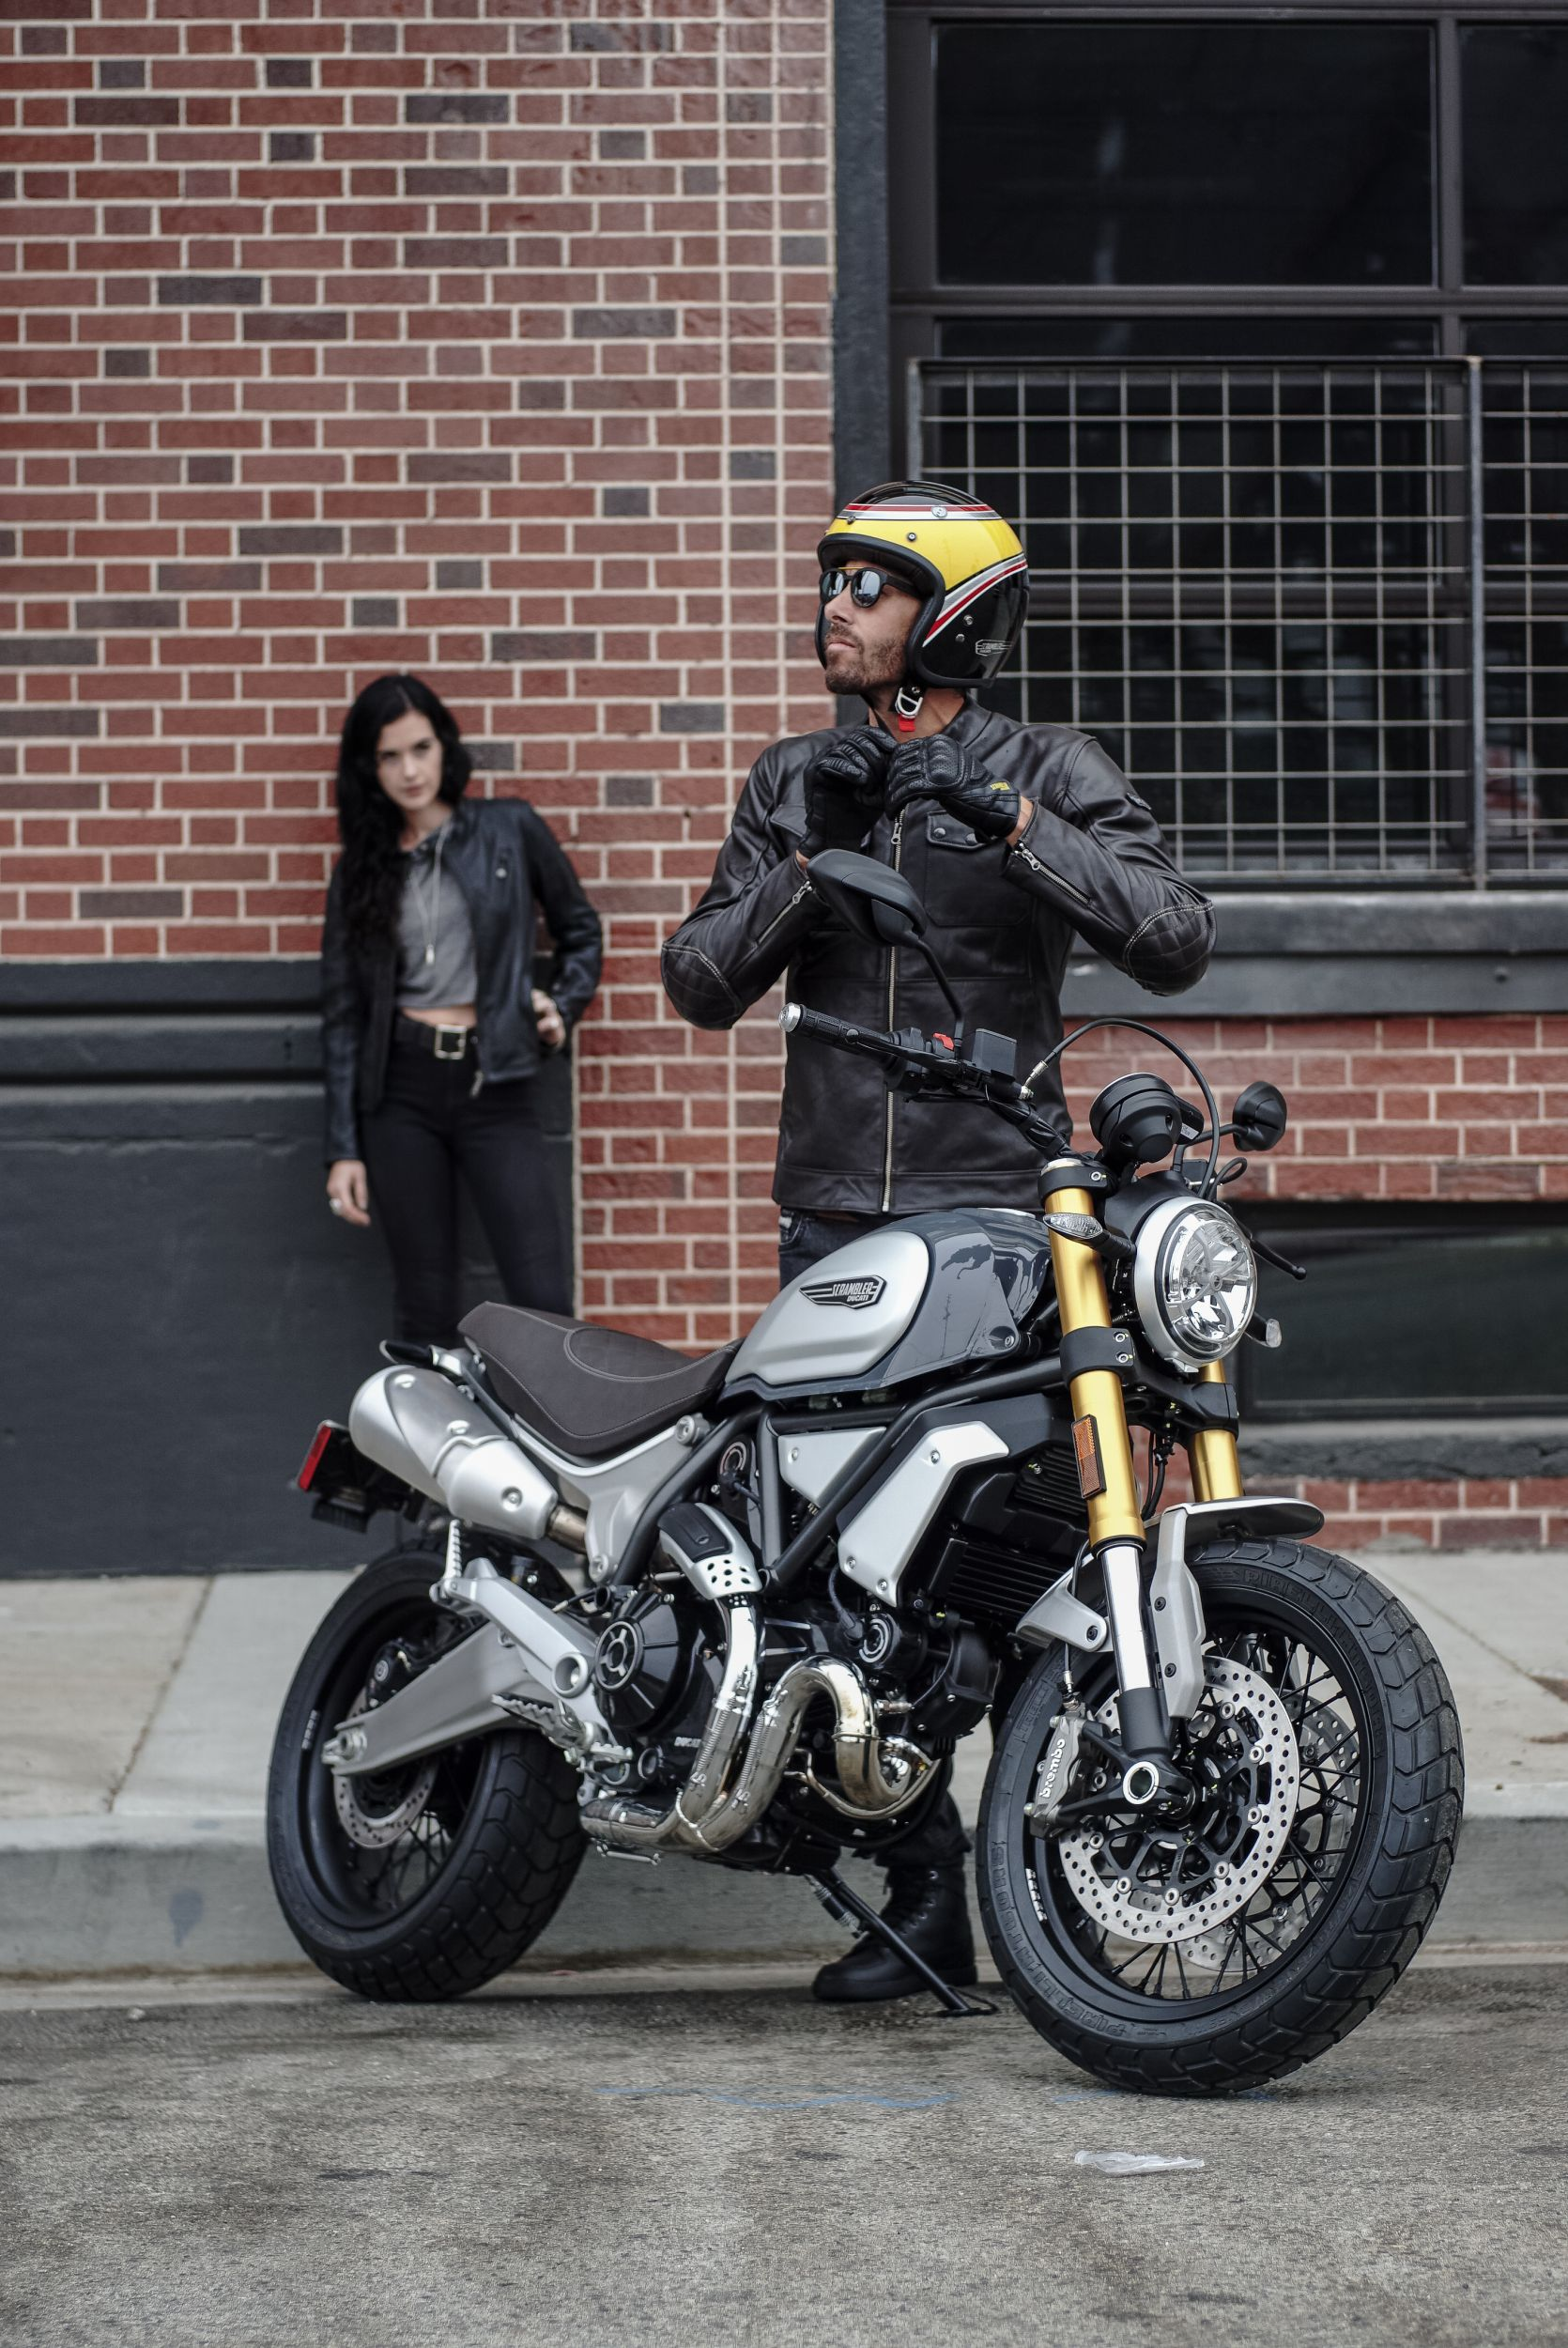 ducati scrambler 1100 special online kaufen. Black Bedroom Furniture Sets. Home Design Ideas